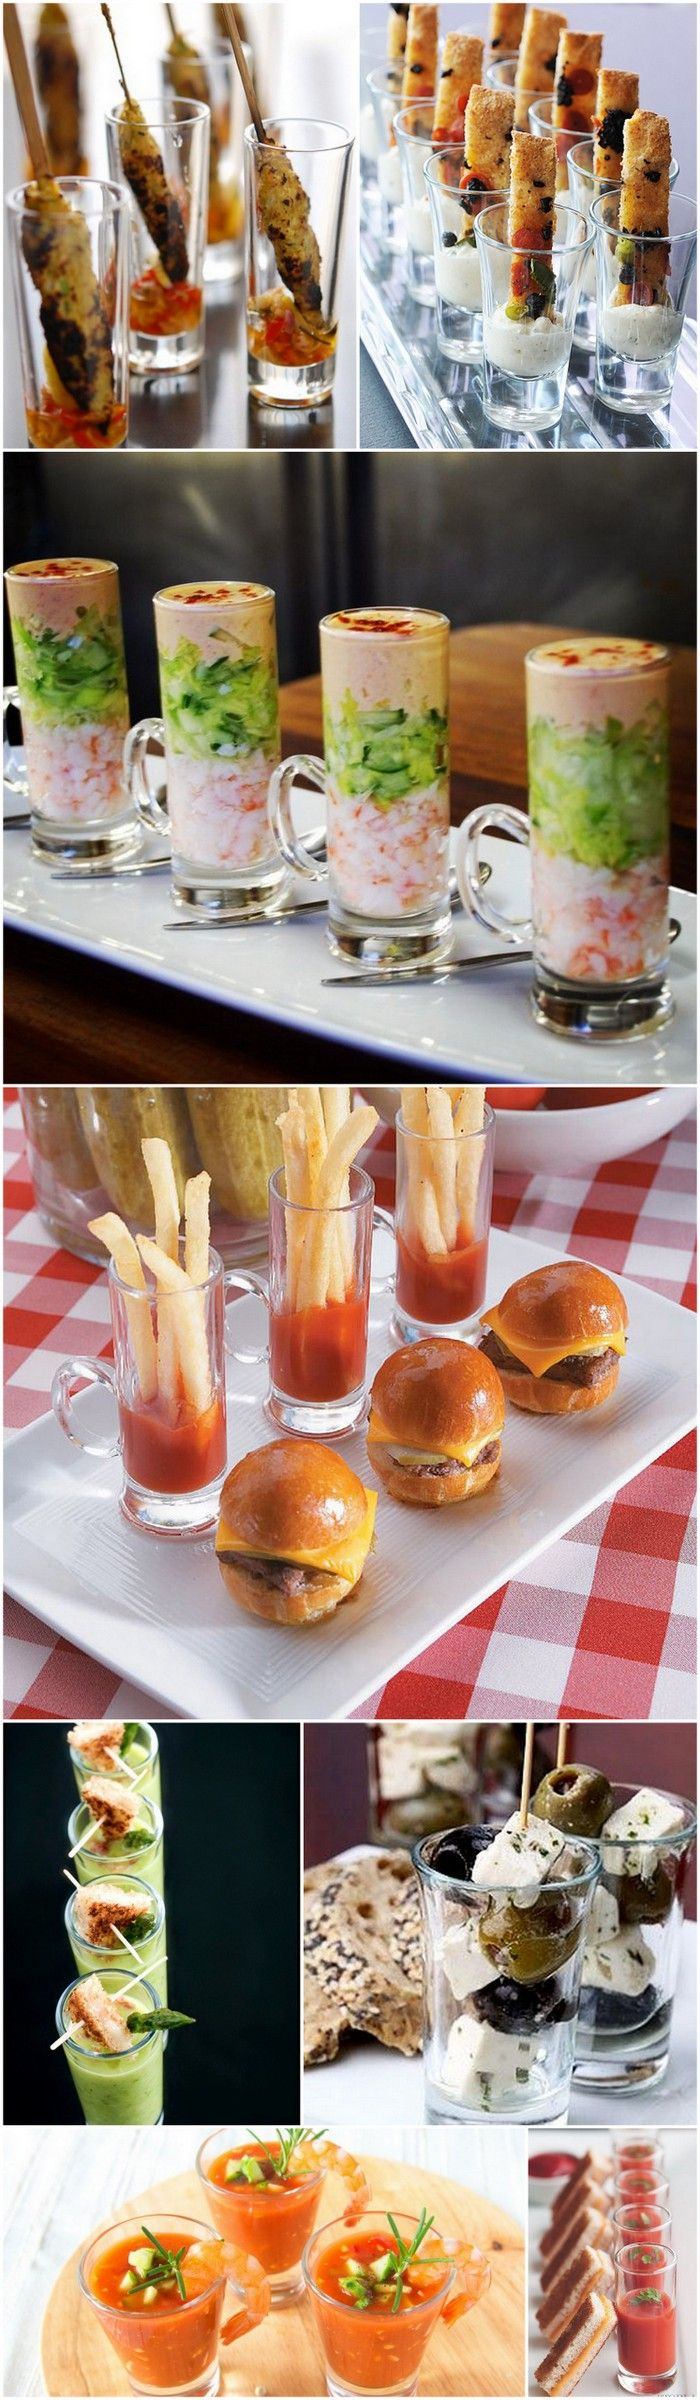 Best 25 party canapes ideas on pinterest canape food for Canape serving dishes